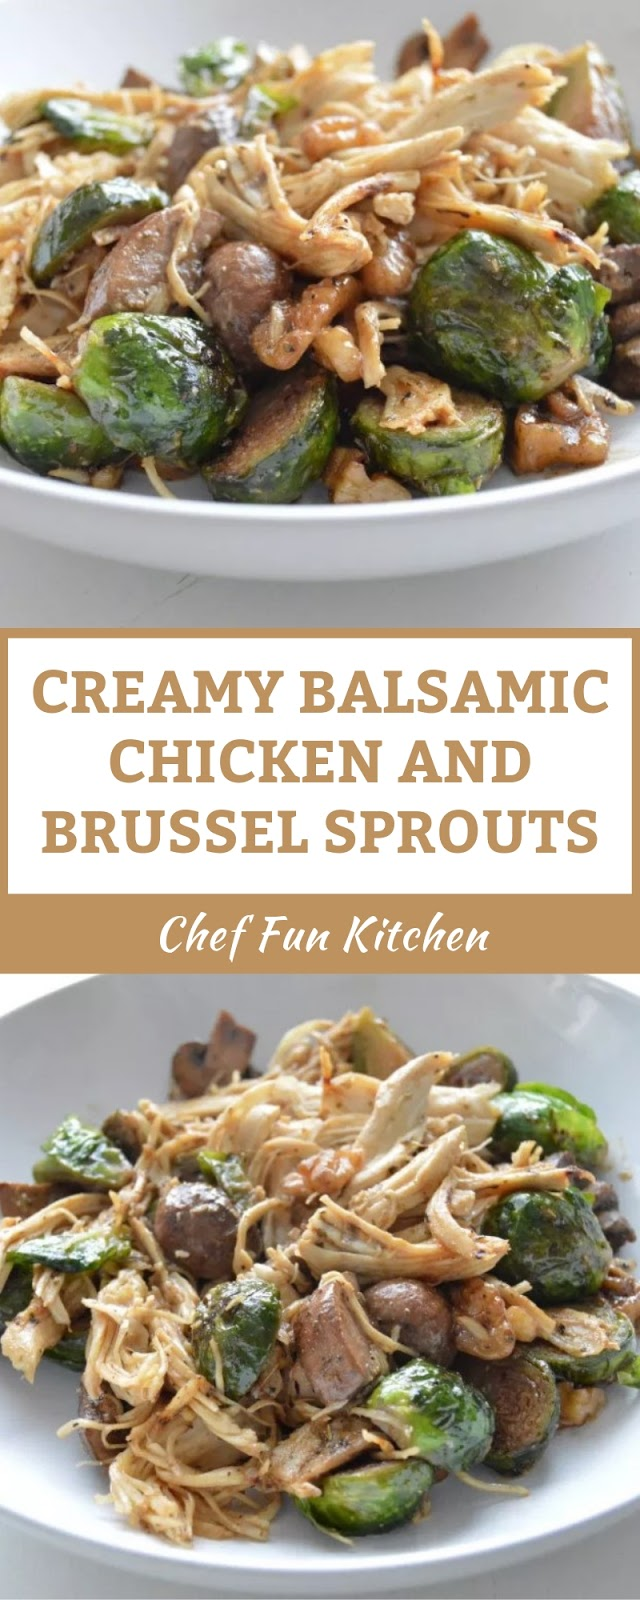 CREAMY BALSAMIC CHICKEN AND BRUSSEL SPROUTS